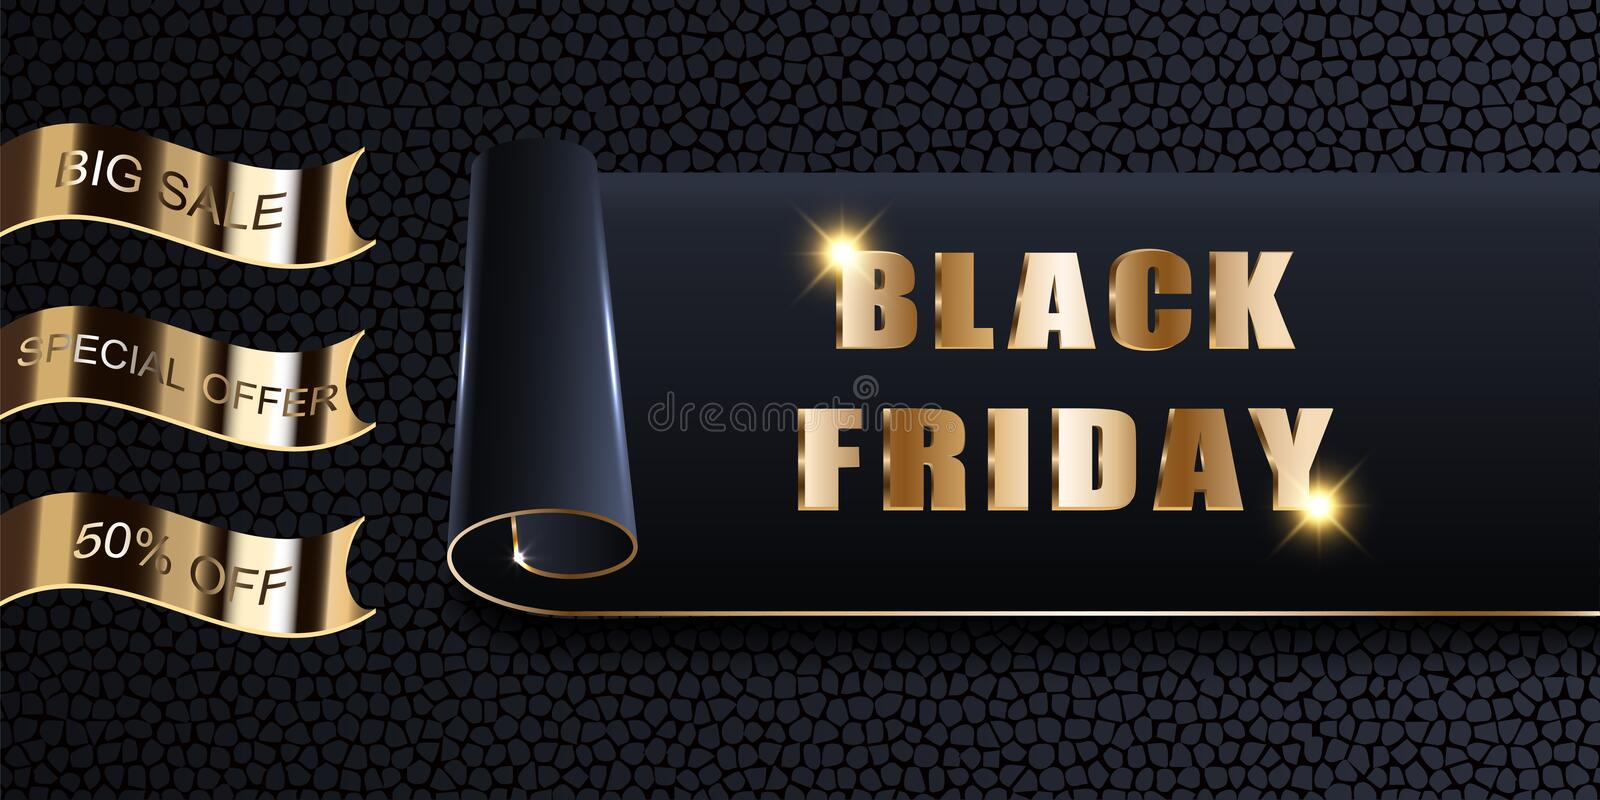 Black Friday Sale, vector mockup of banner, invitation, card, ads, logo, offer. Stylish luxury golden design dark background with. Texture, twisted and rolled vector illustration